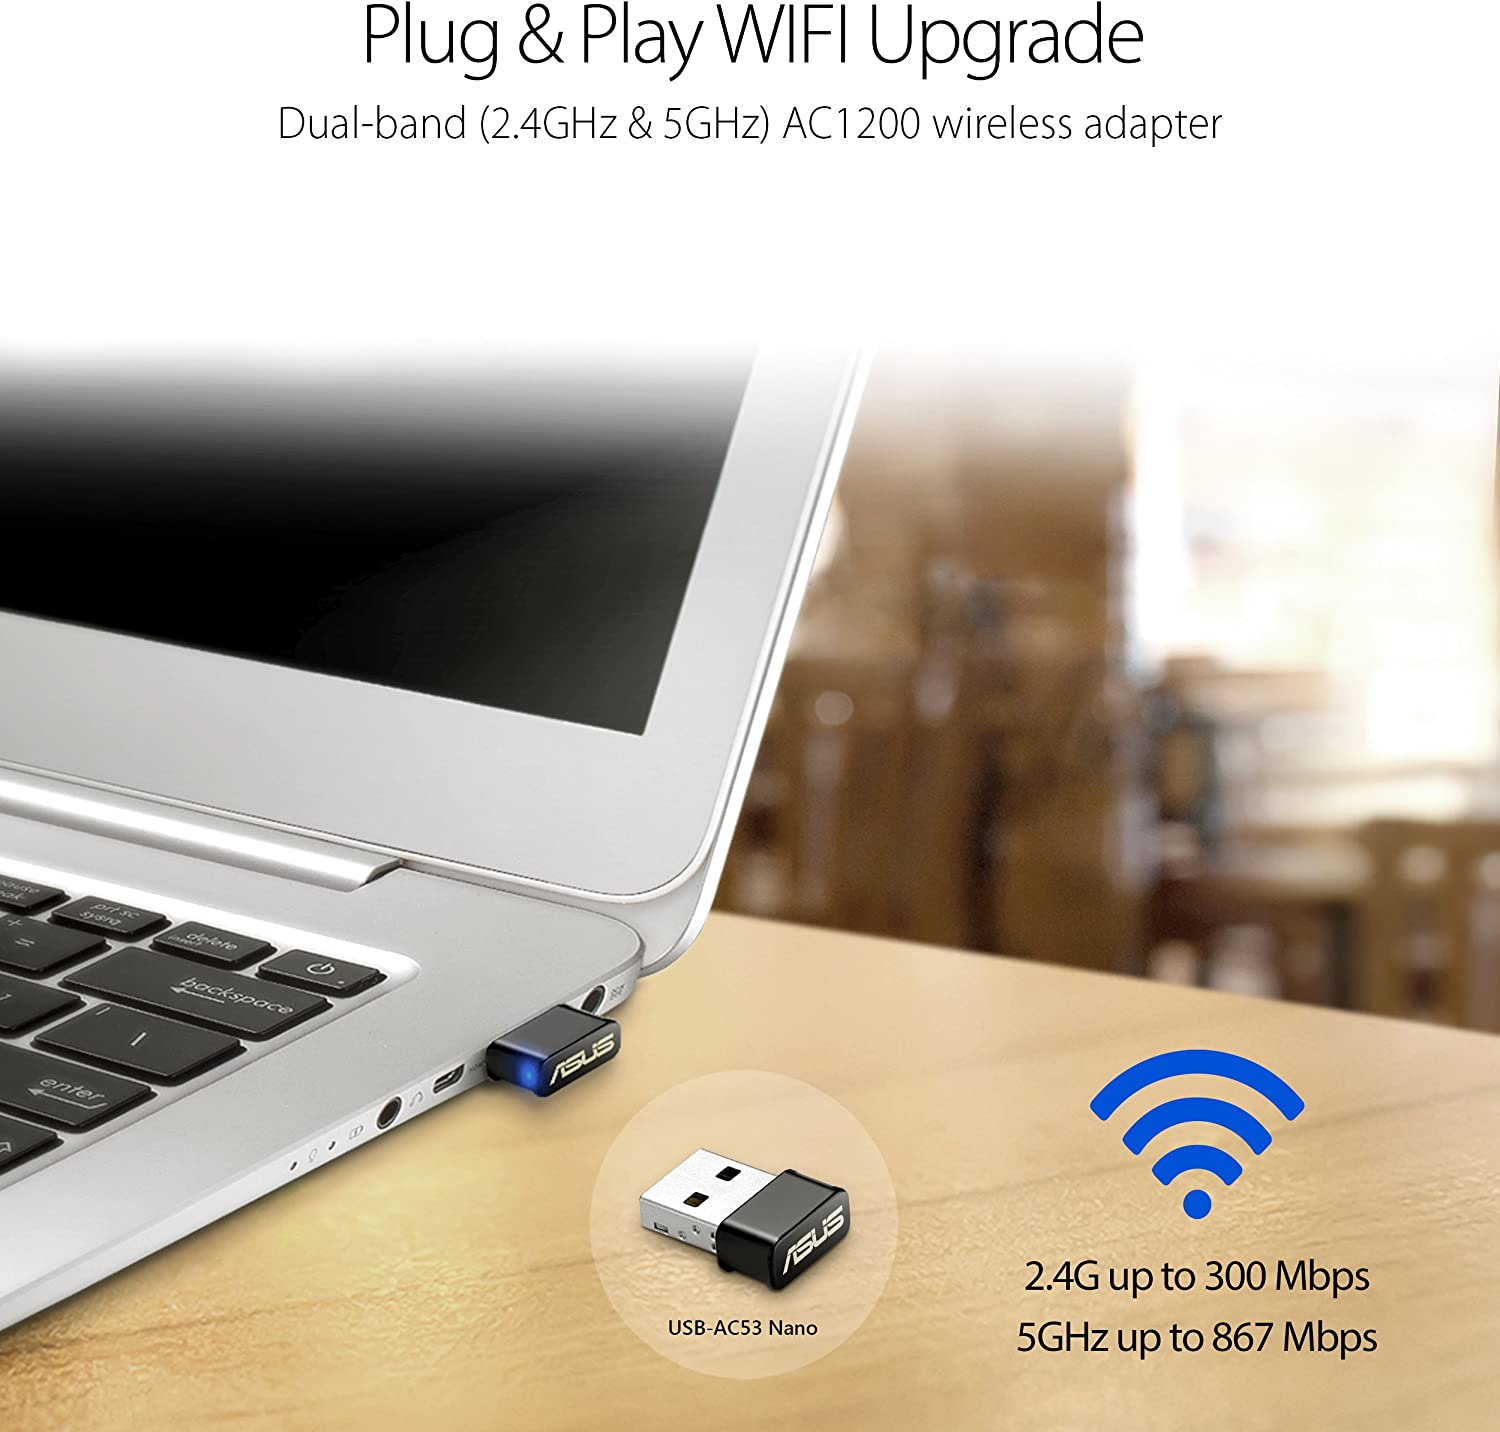 ASUS USB-AC53 AC1200 Nano USB Dual-Band Wireless Adapter, MU-Mimo, Compatible for Windows XP/Vista/7/8/1/10